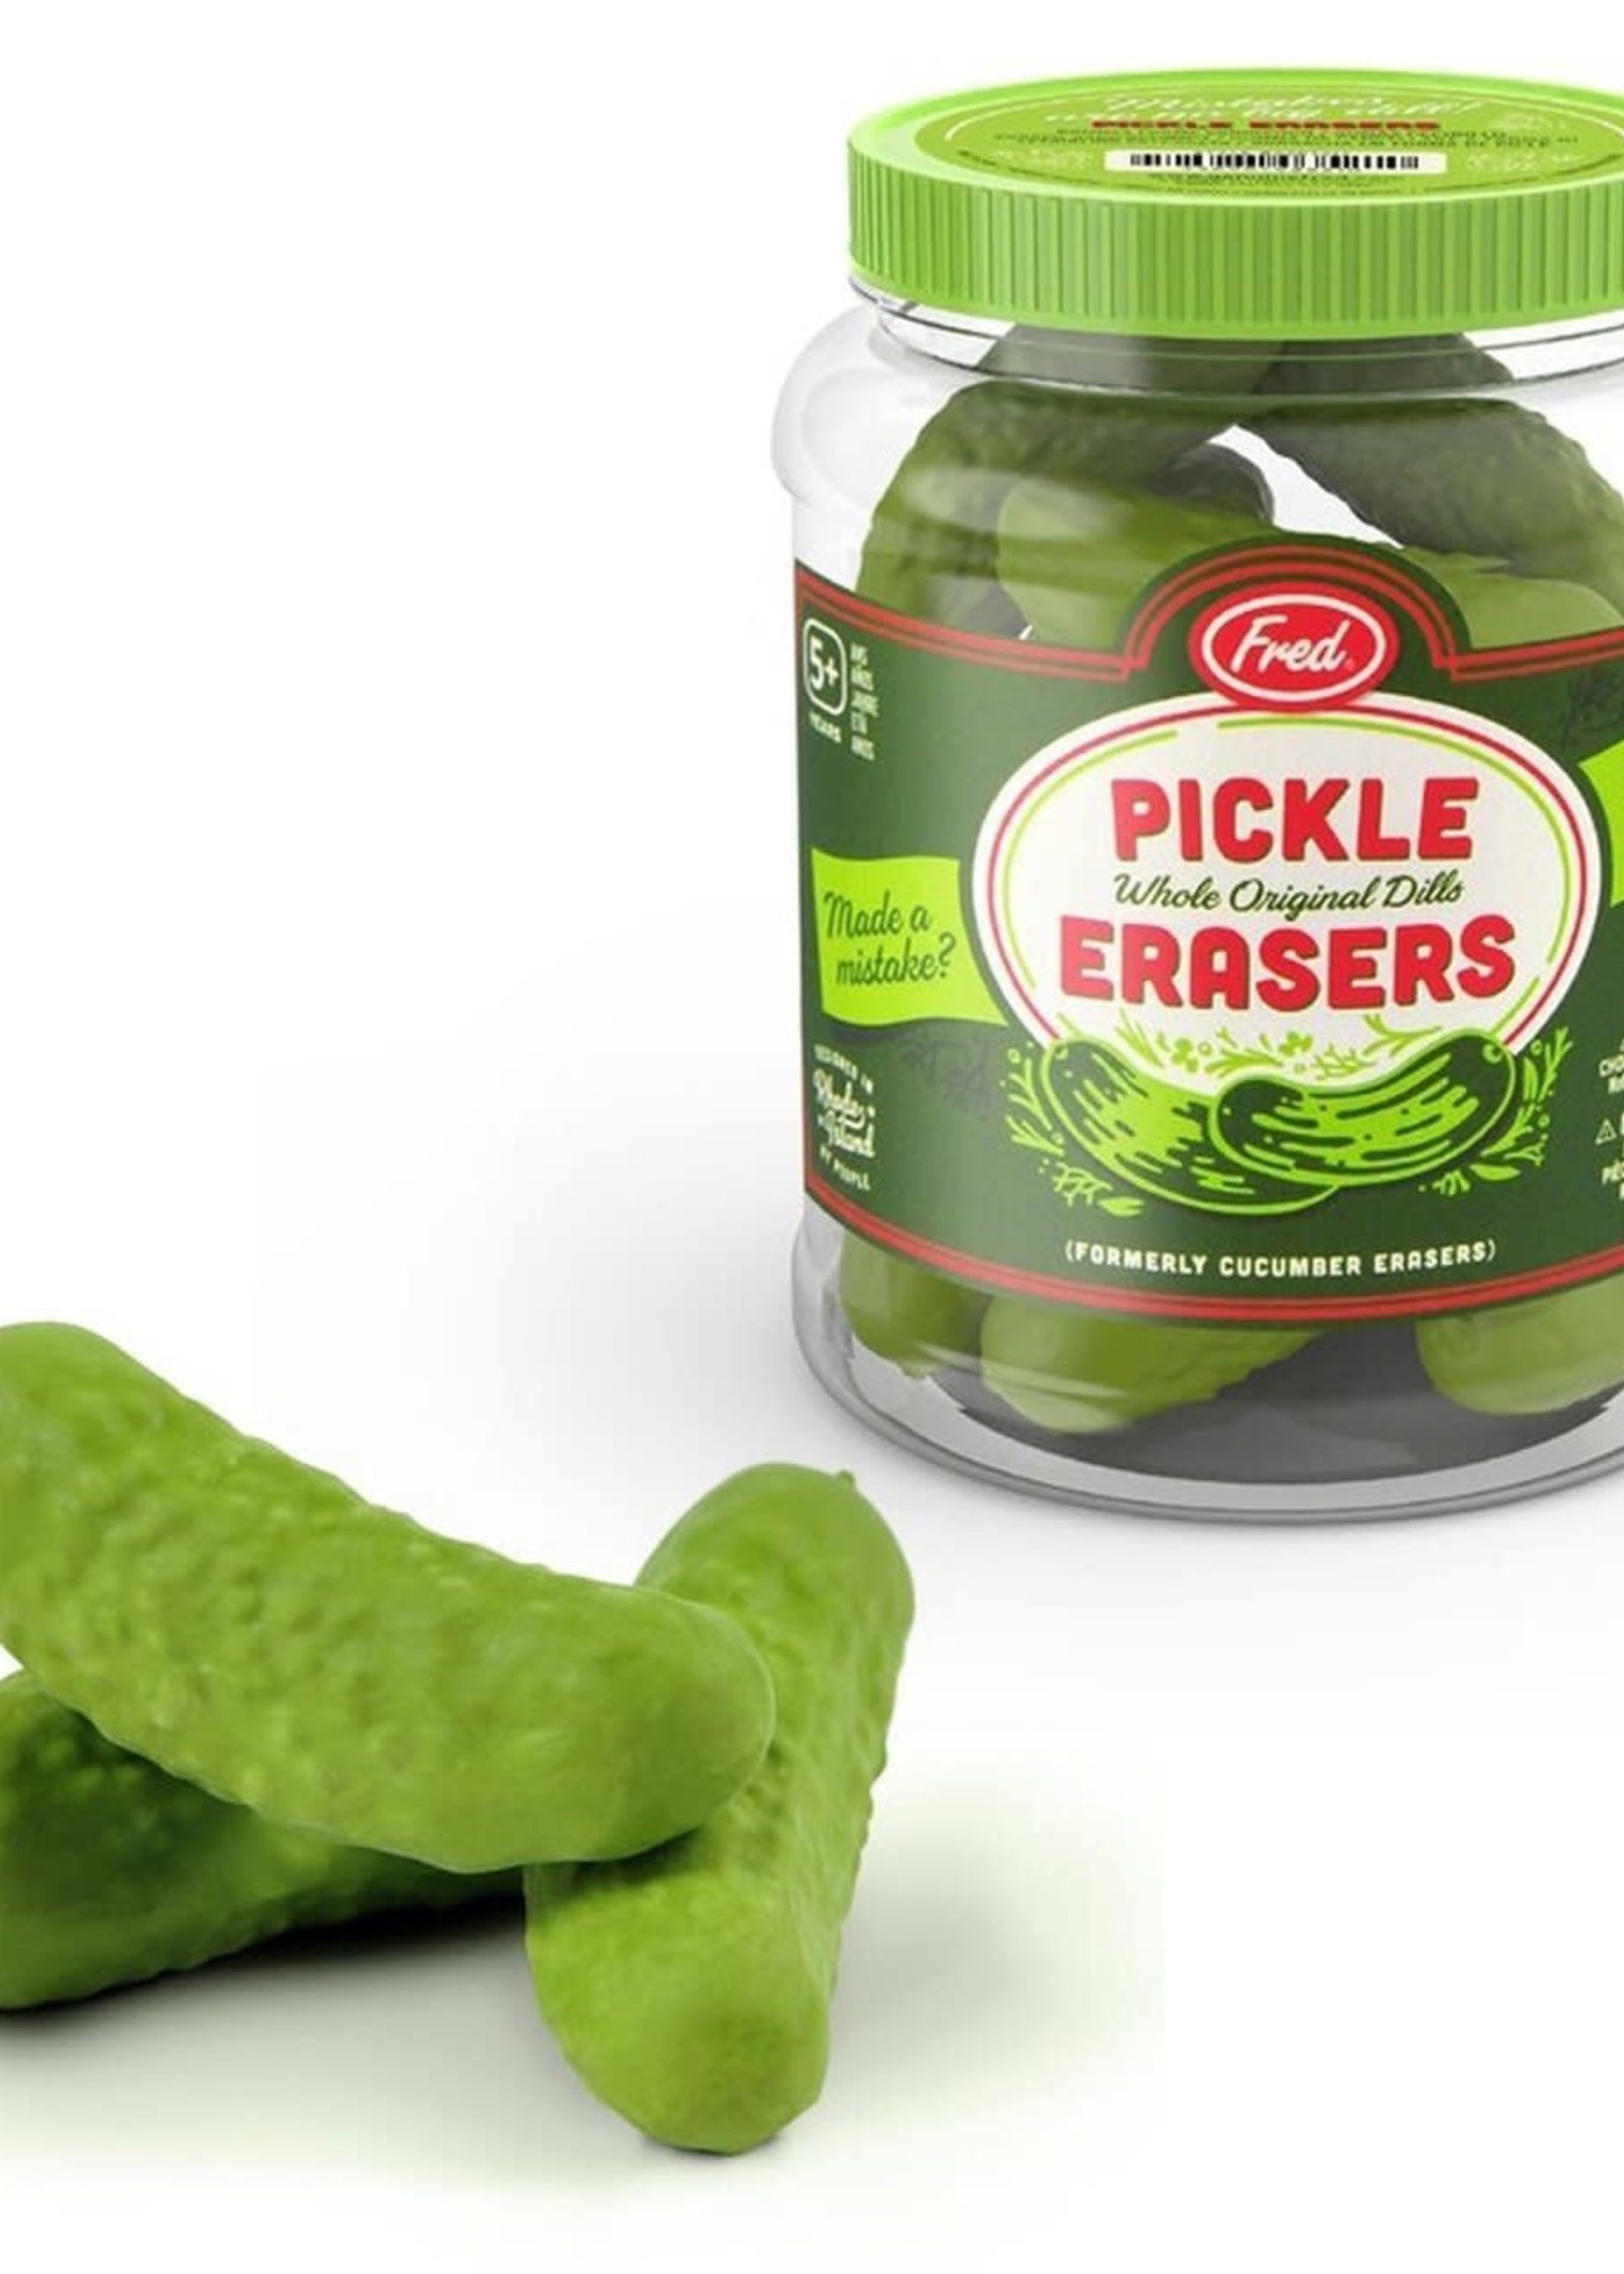 Fred & Friends FRED PICKLE ERASERS